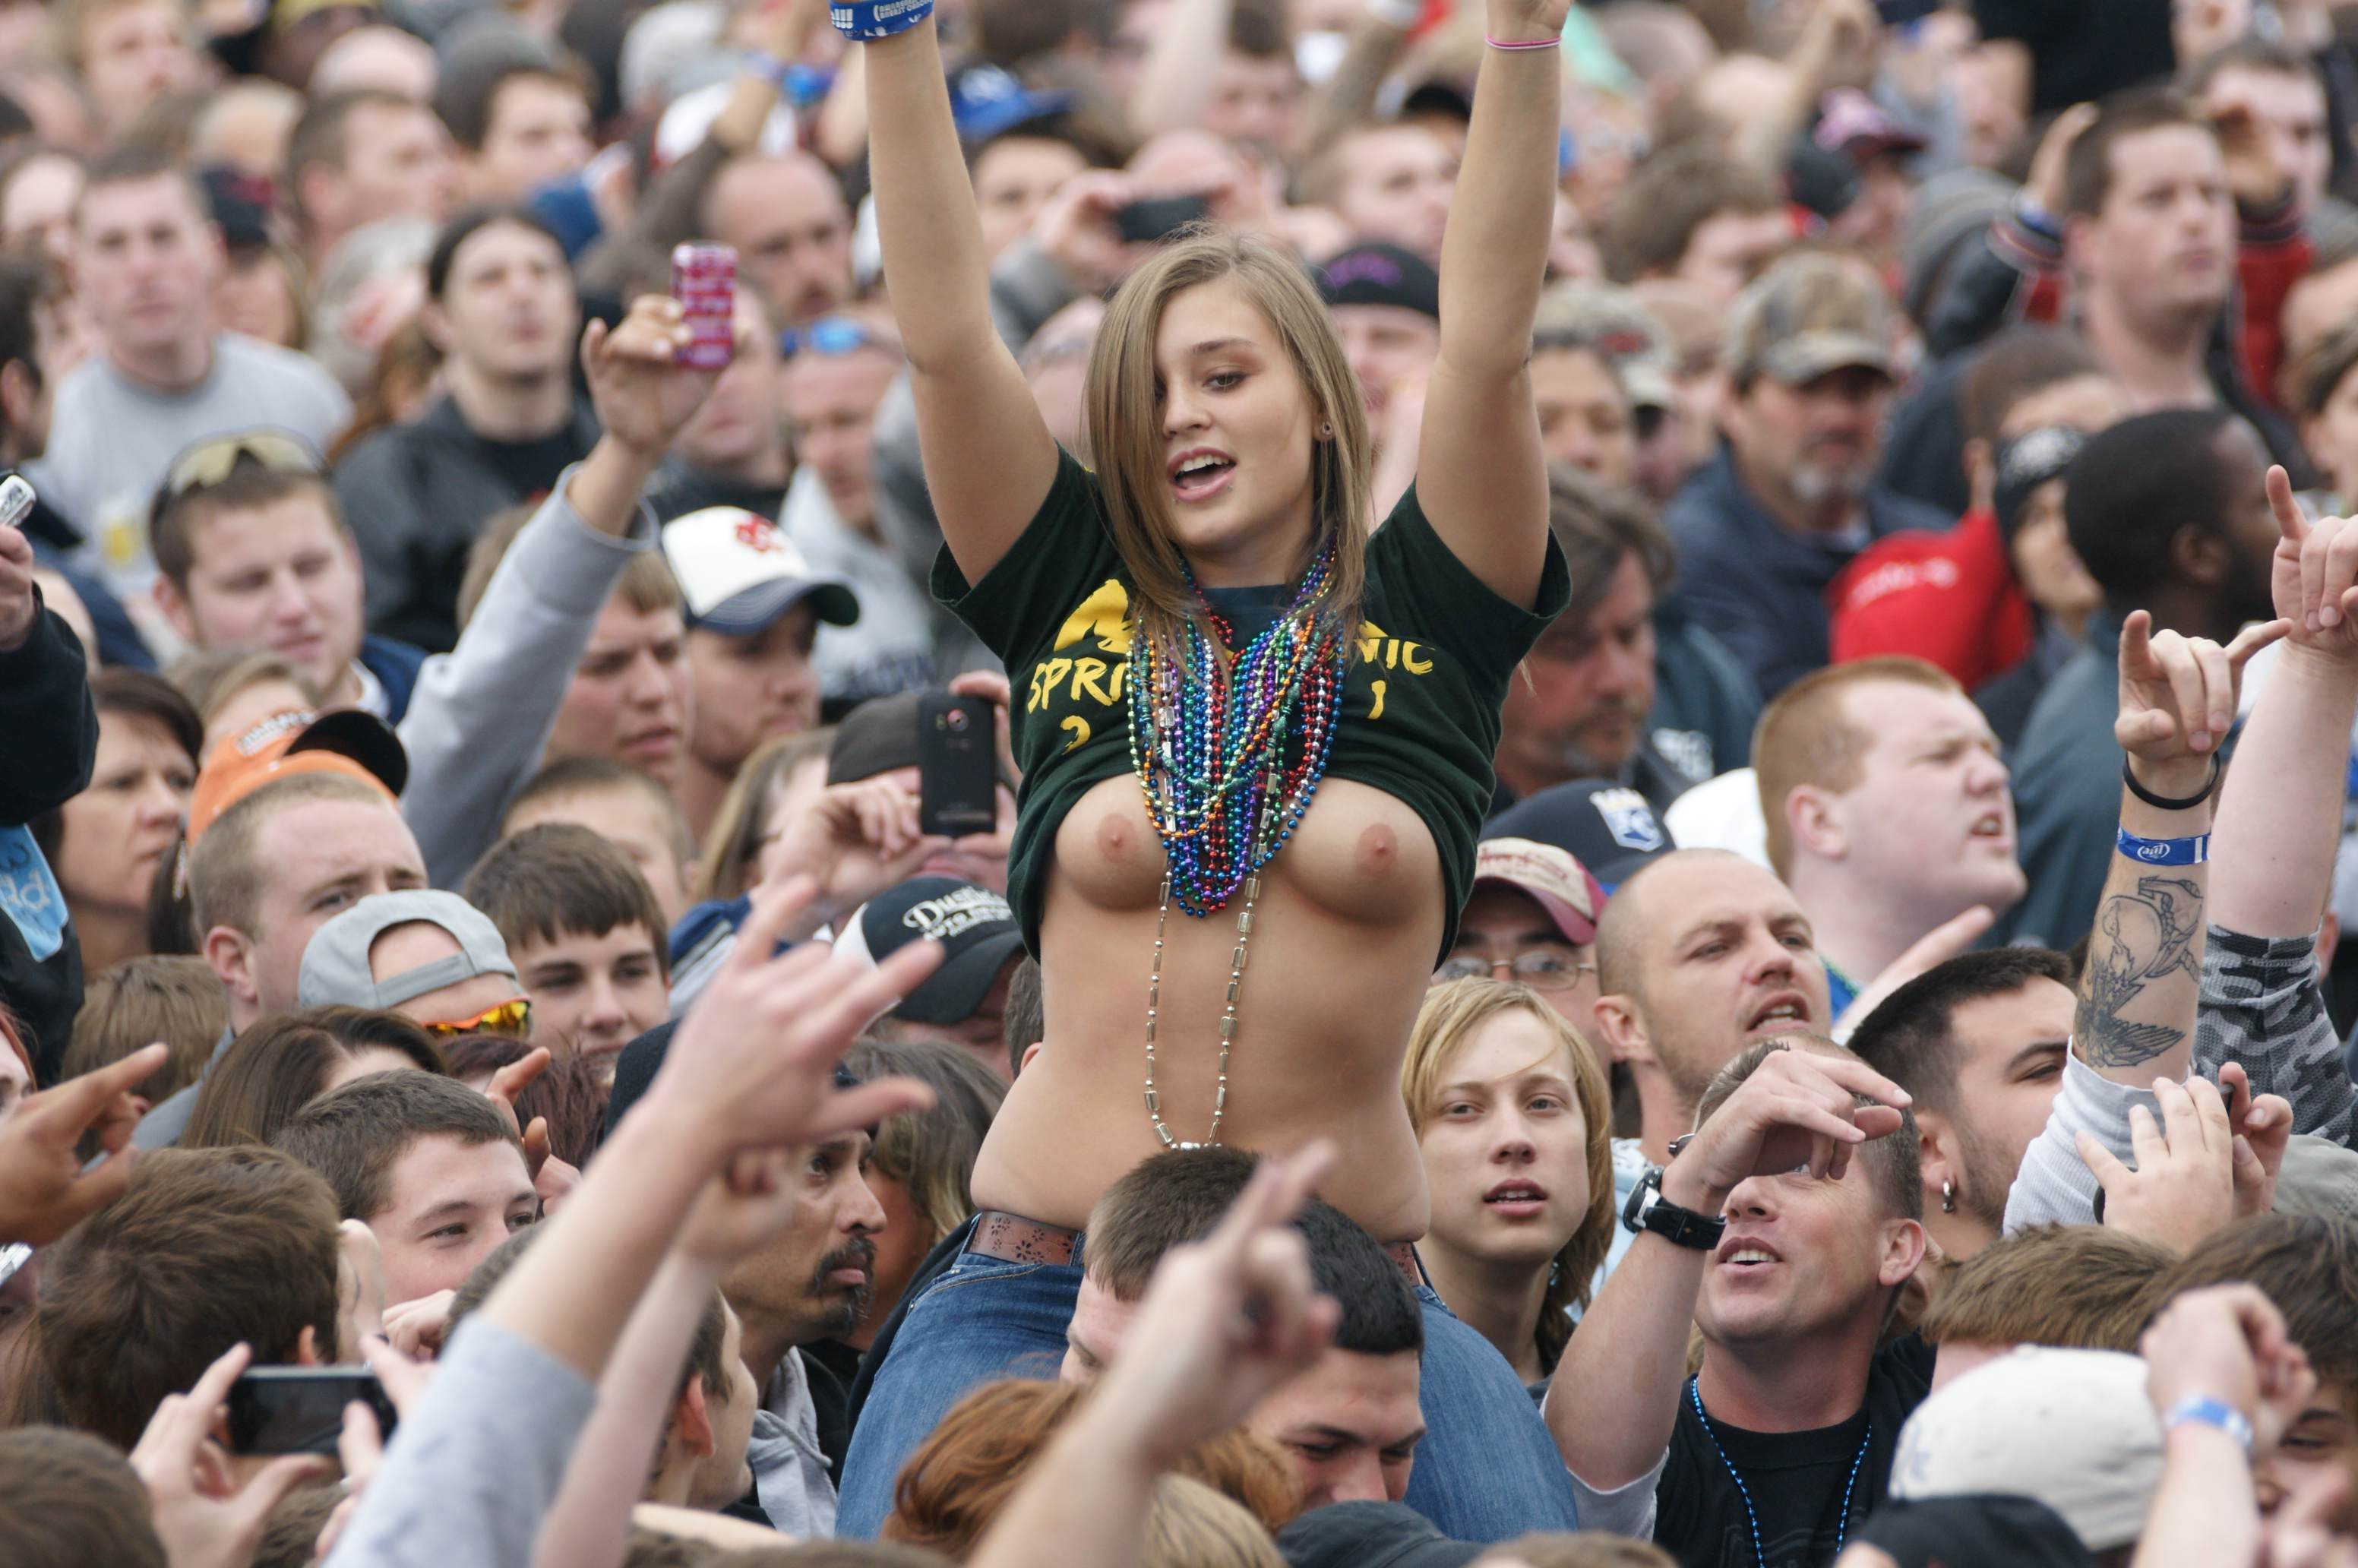 into-pussy-nudegirls-in-crowd-girls